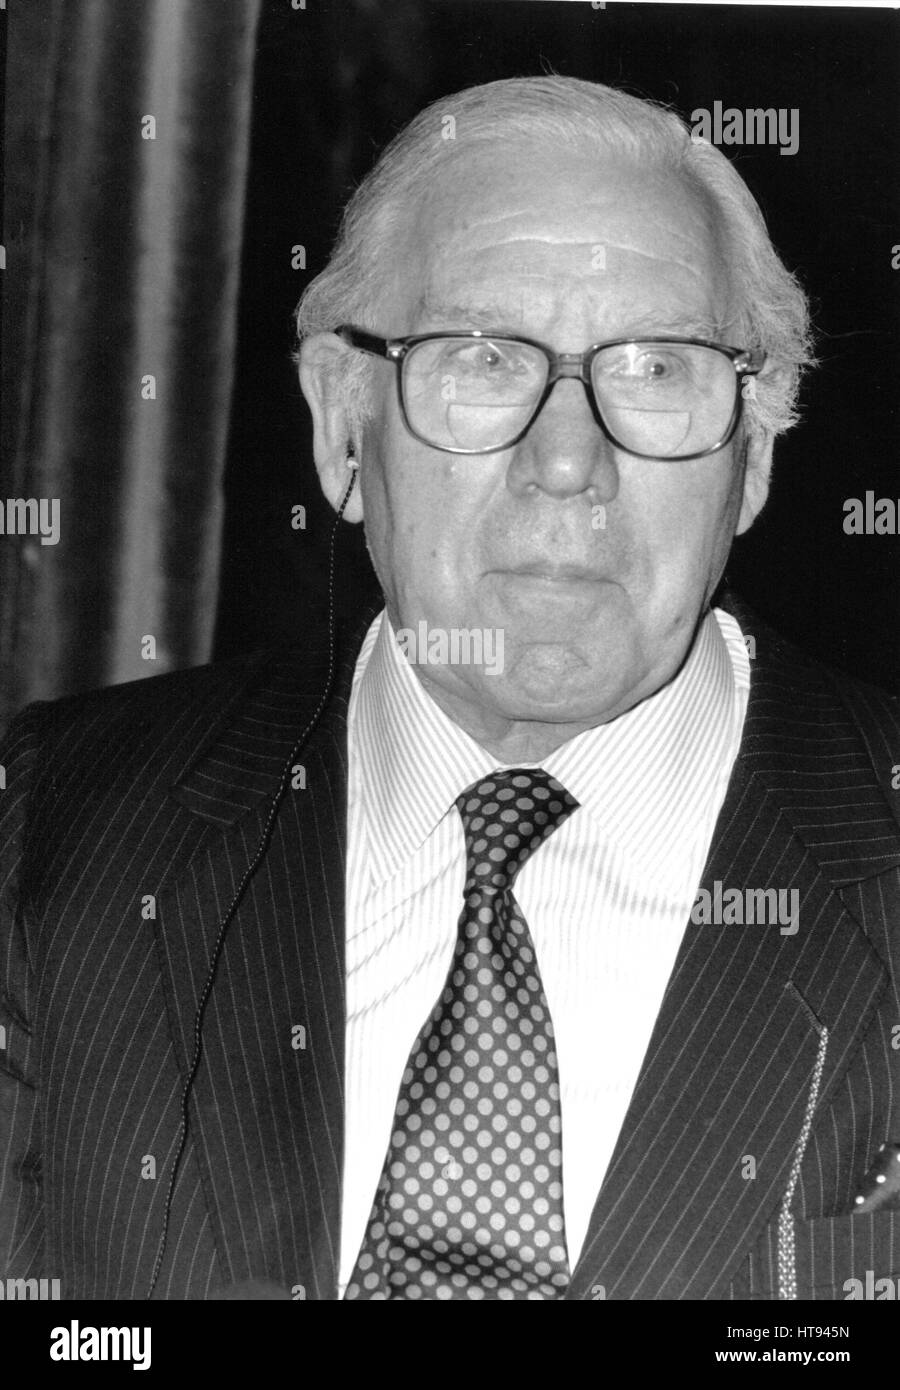 Lord King of Wartnaby (John), Chairman of British Airways, holds a press conference in London, England on May 21, - Stock Image